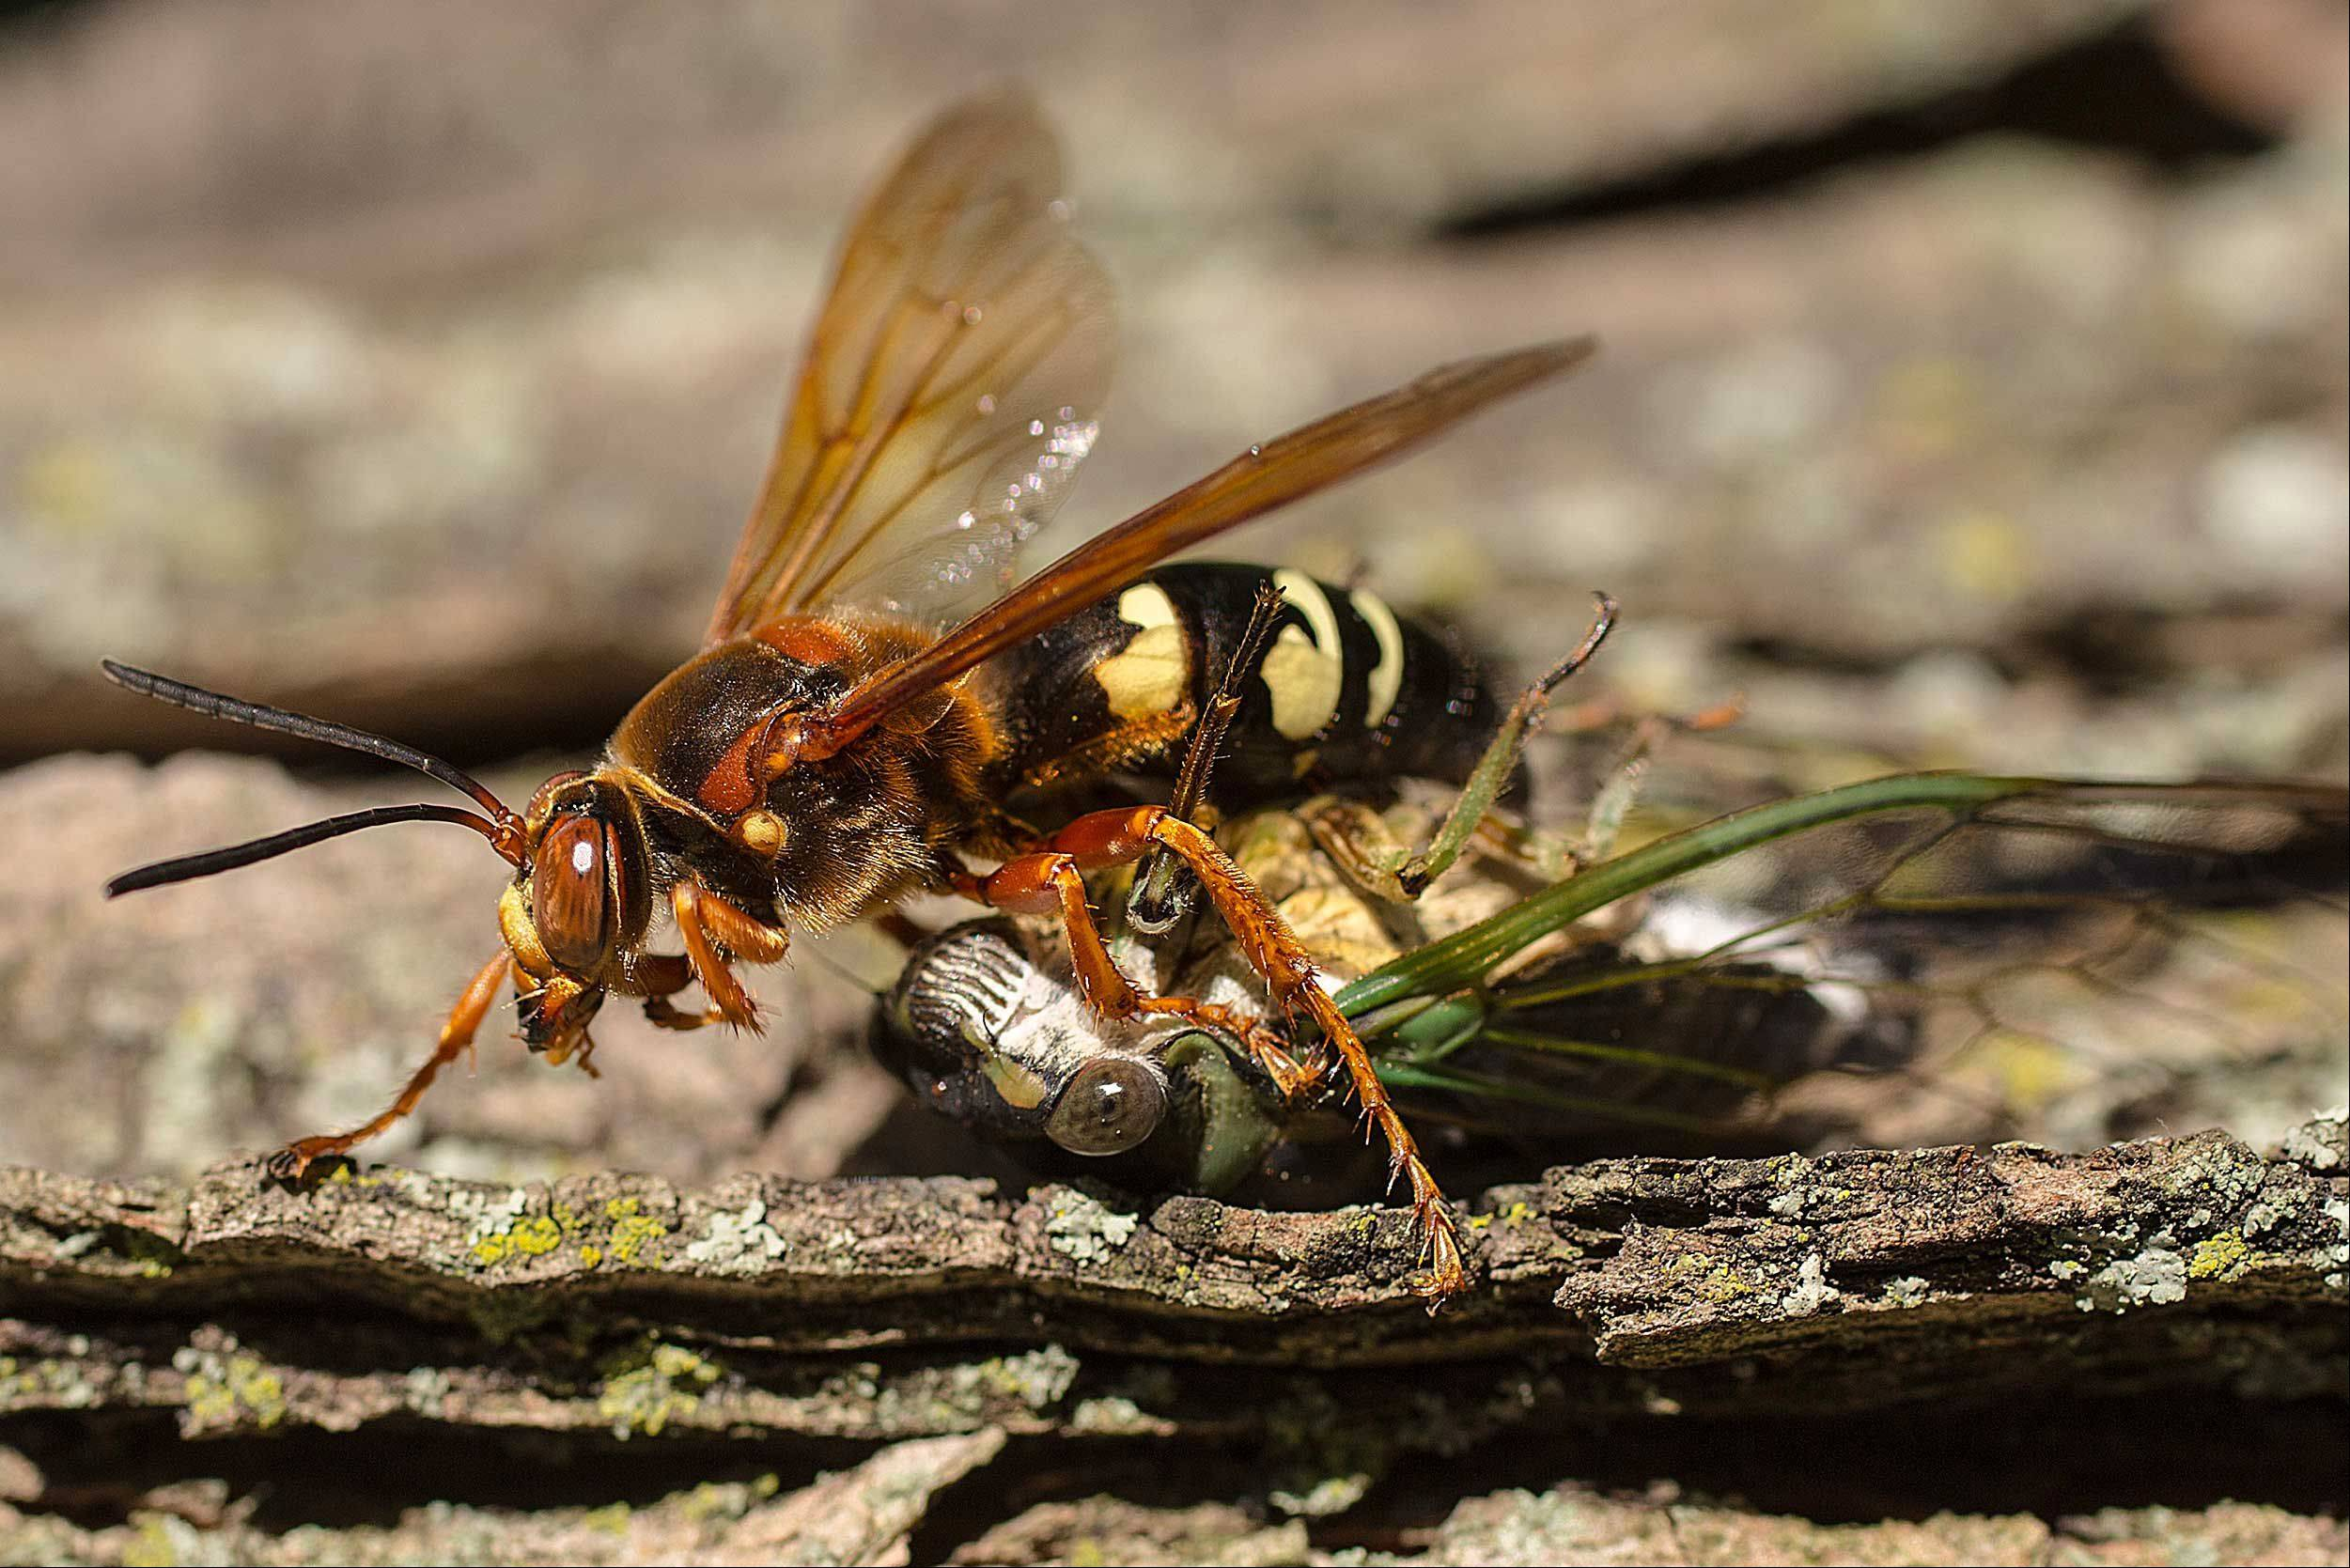 The photo is of a Cicada Killing Wasp dragging a cicada home for dinner. It was taken very quickly during a cookout on Labor Day.